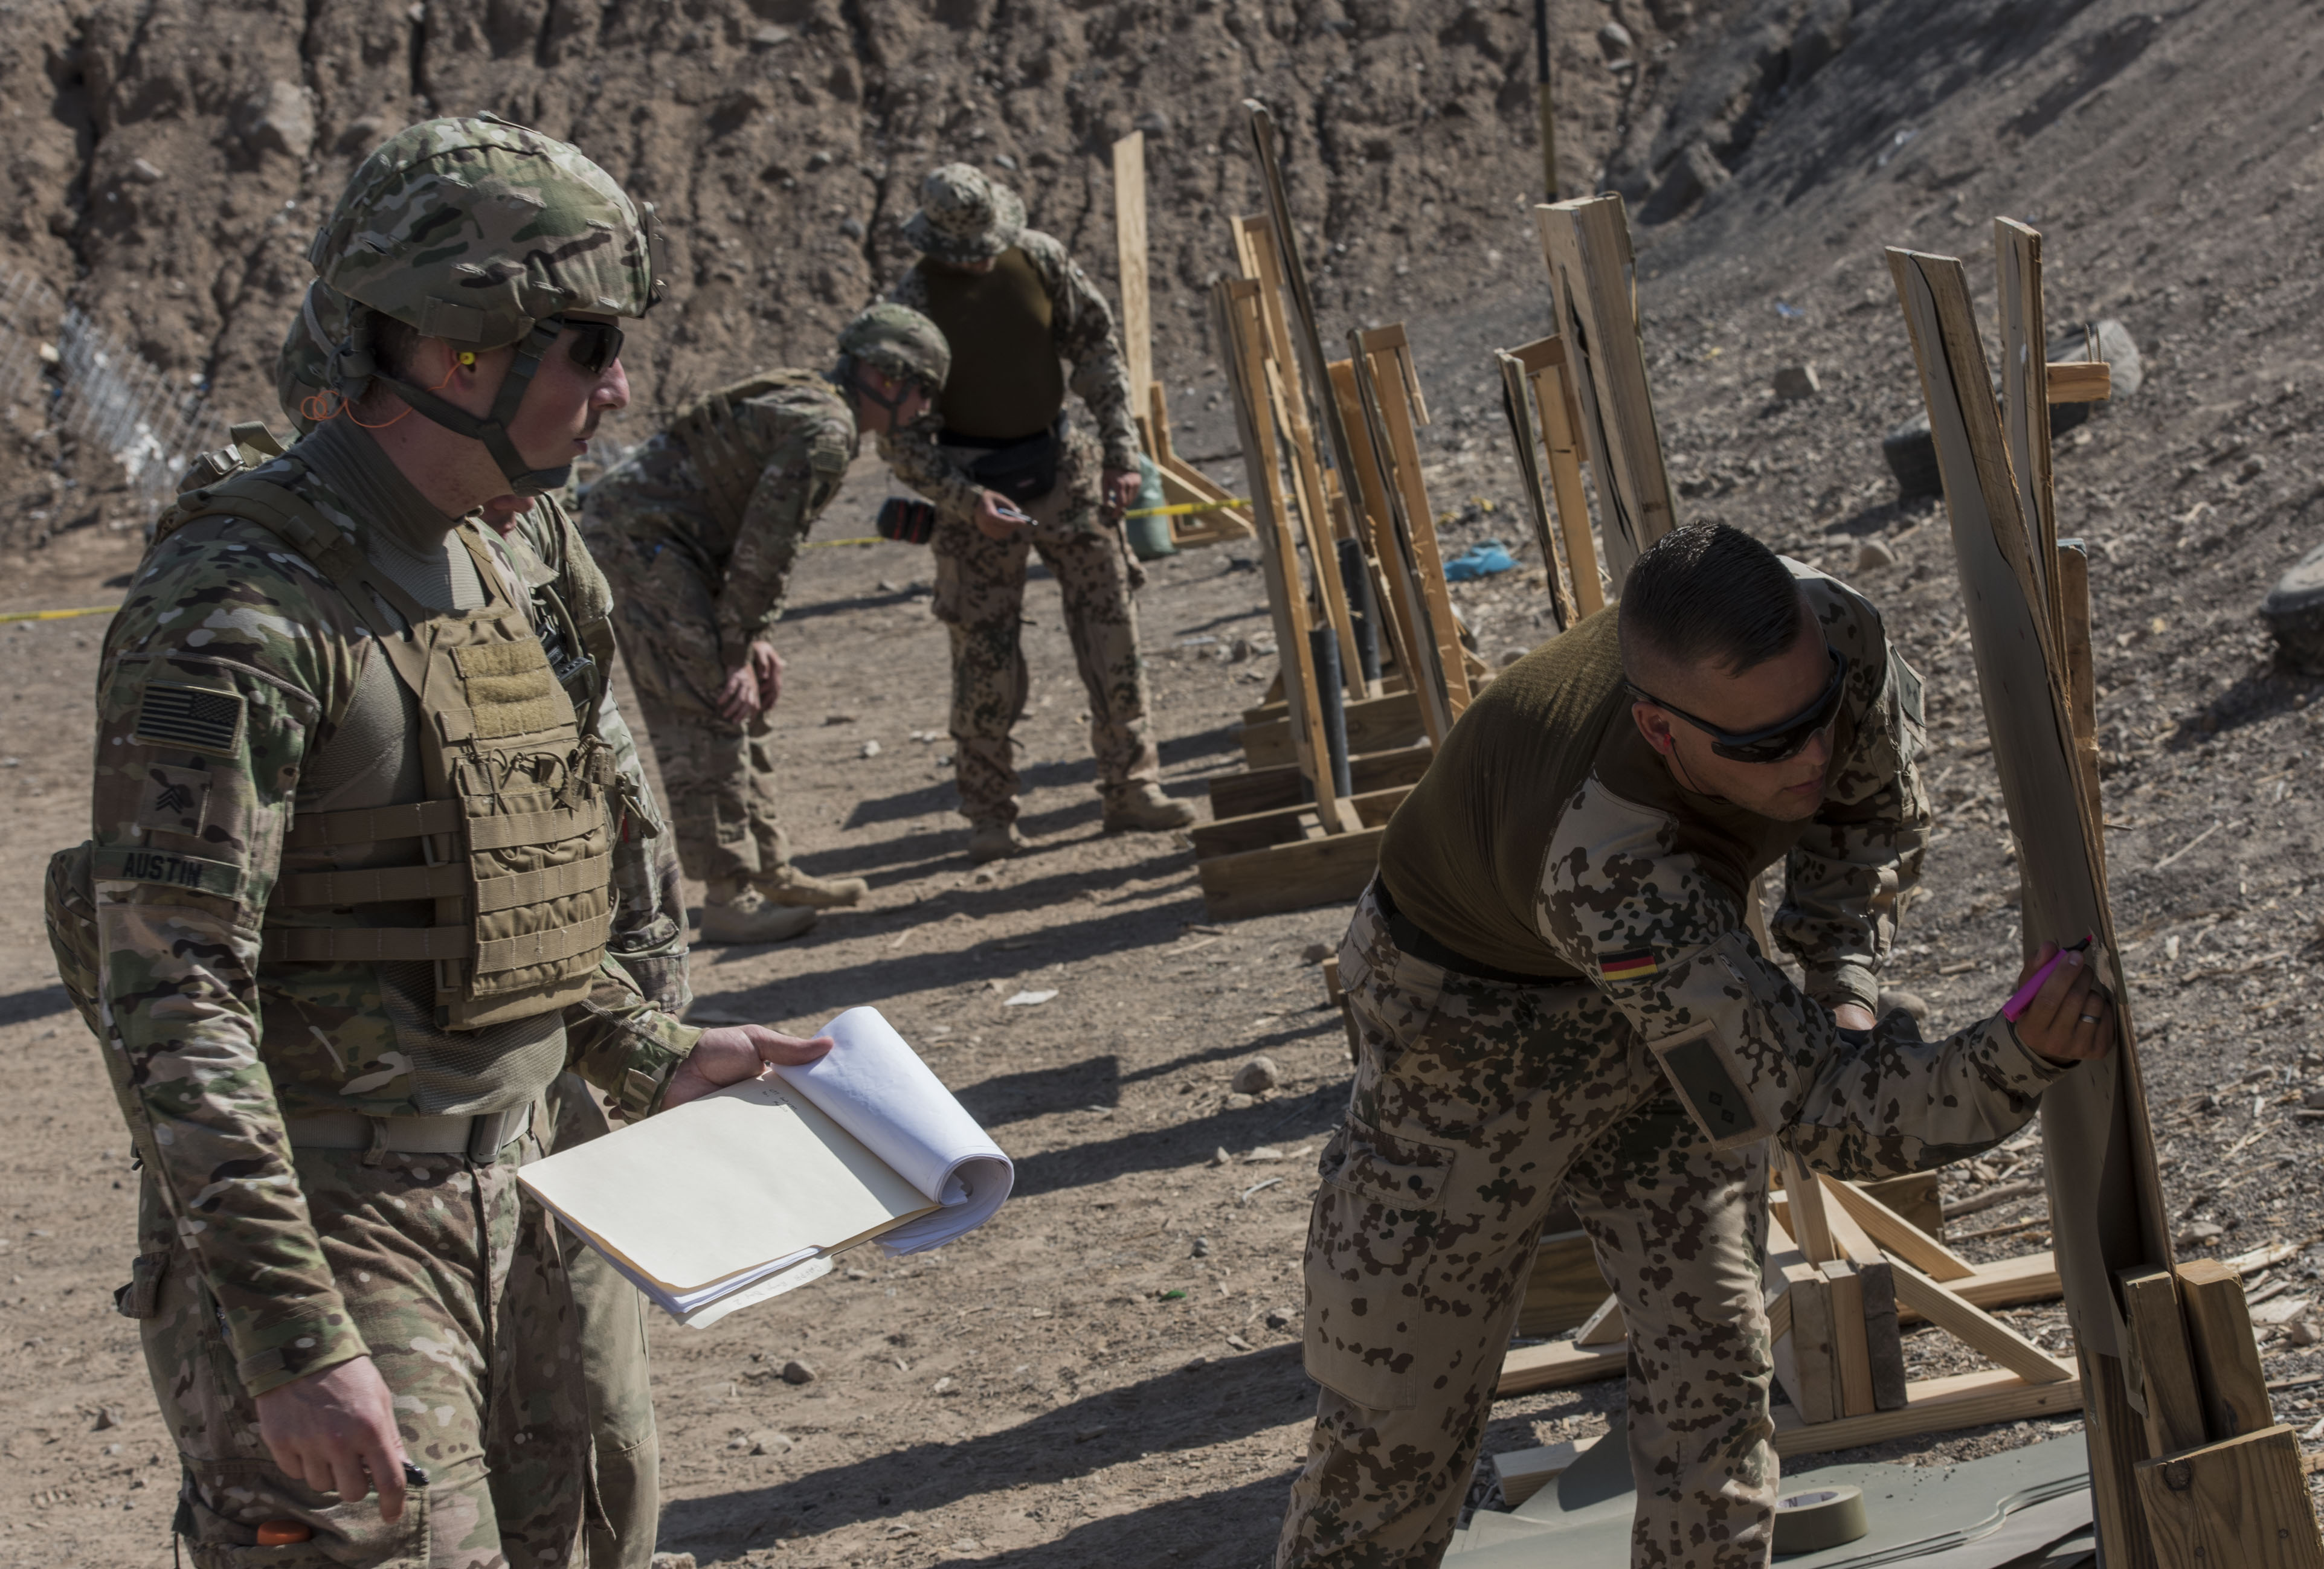 U.S. service members assigned Combined Joint Task Force-Horn of Africa complete a weapons qualification test as part of the competition to earn the German Armed Forces Proficiency Badge (GAFPB), a decoration of the Armed Forces of the Federal Republic of Germany, at the Djiboutian National Police firing range in Djibouti City, Djibouti, Nov. 29, 2017. Competitors must complete a physical fitness test, uniformed swim, weapons qualification, ruck march, first aid course and chemical warfare course to be awarded the GAFPB, one of the few foreign allied military awards that U.S. service members are authorized to wear. (U.S. Air National Guard photo by Staff Sgt. Allyson L. Manners)